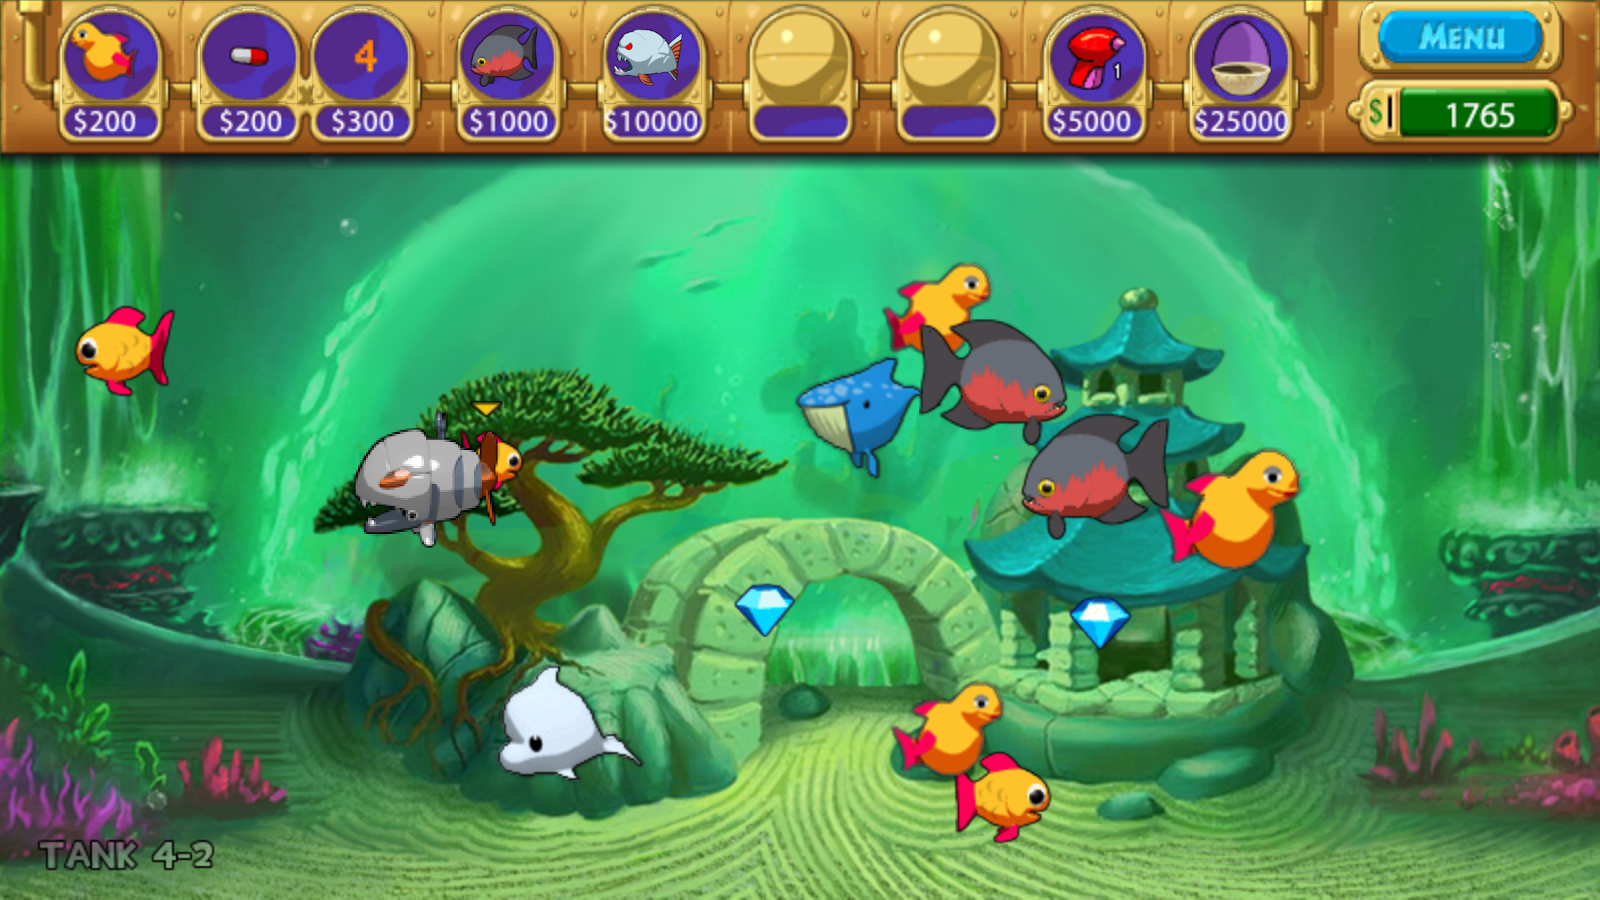 InseAqurium Deluxe - Feed Fishes! Fight Aliens! 3 9 2 APK